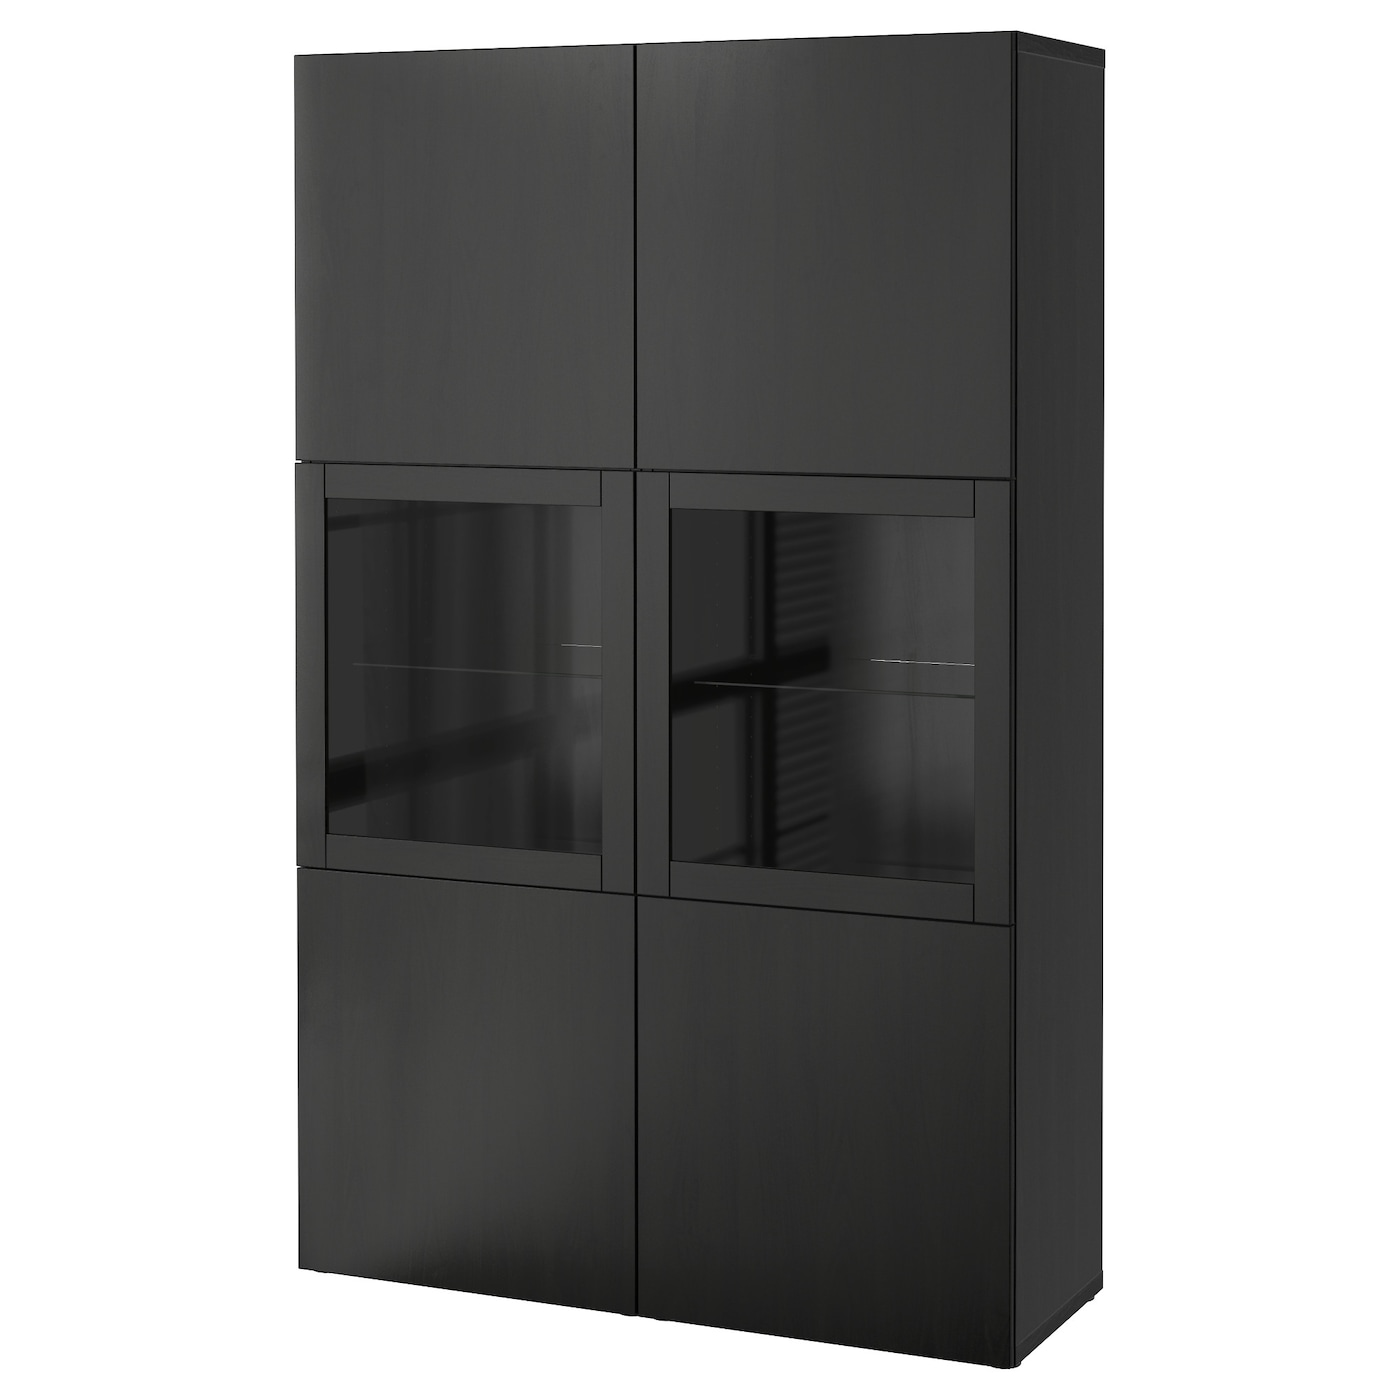 Best storage combination w glass doors lappviken sindvik - Bureau 90 cm de large ...